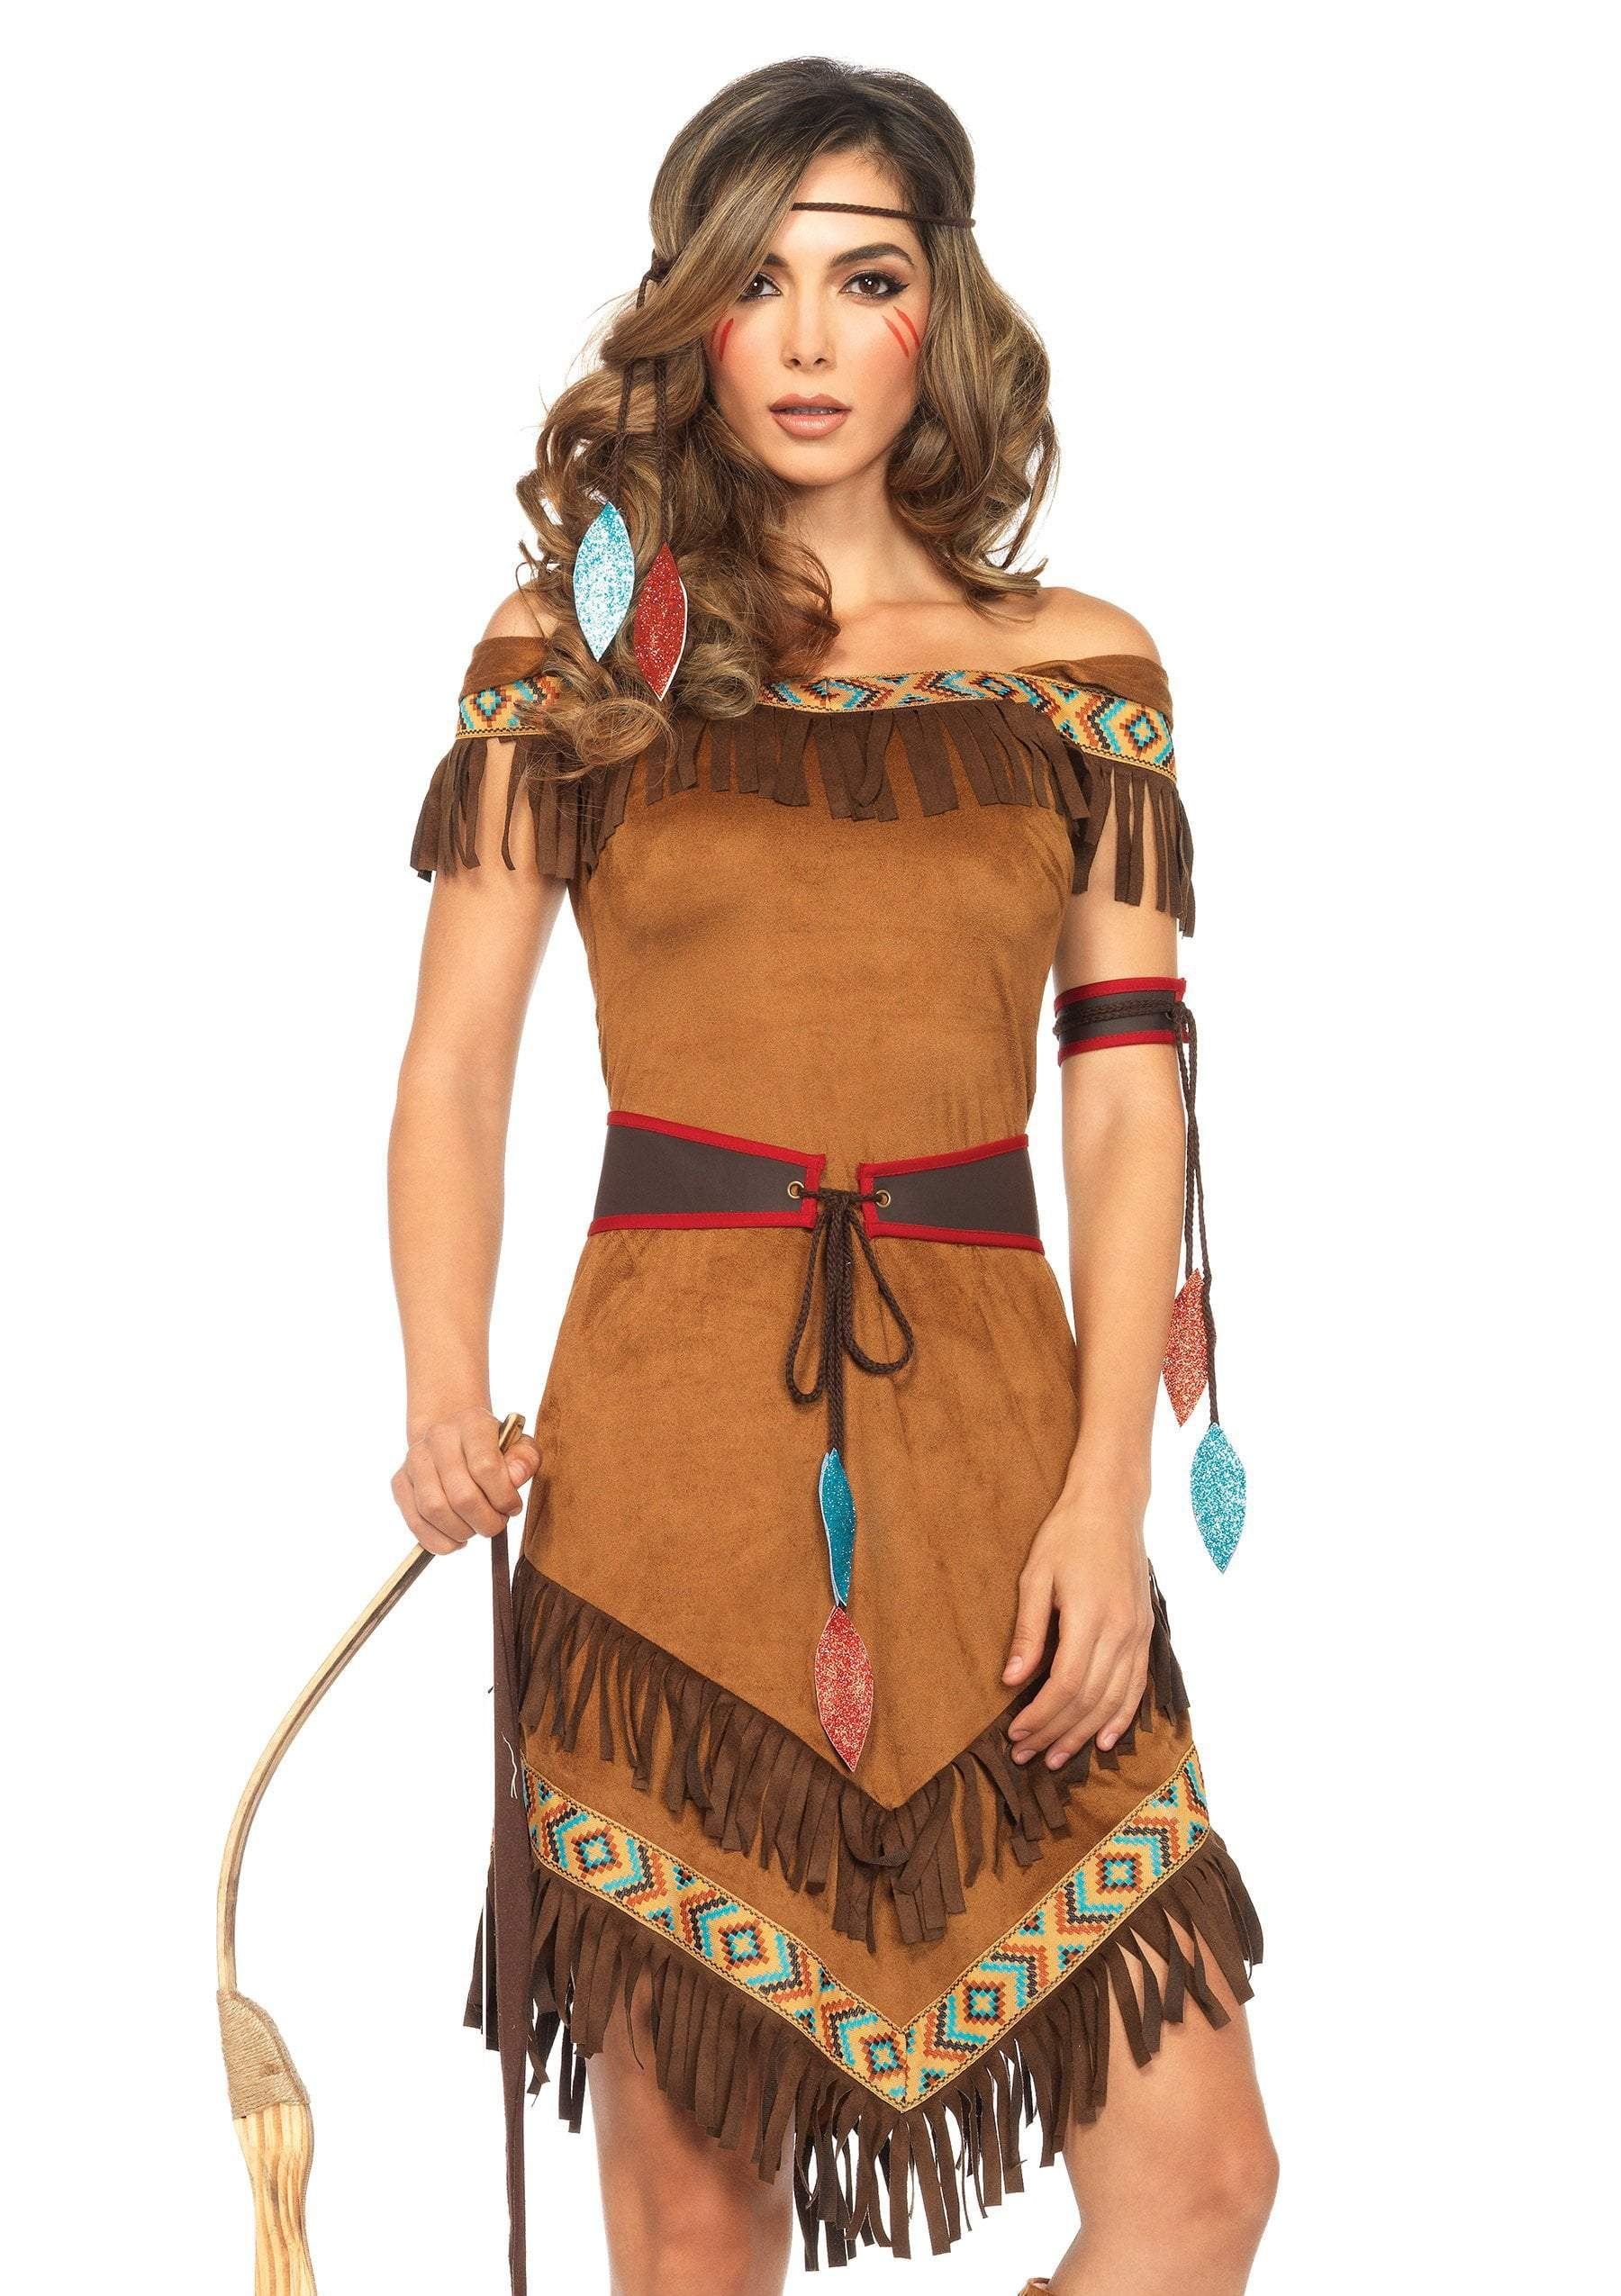 Leg Avenue Costumes Adult Native Princess Indian Costume